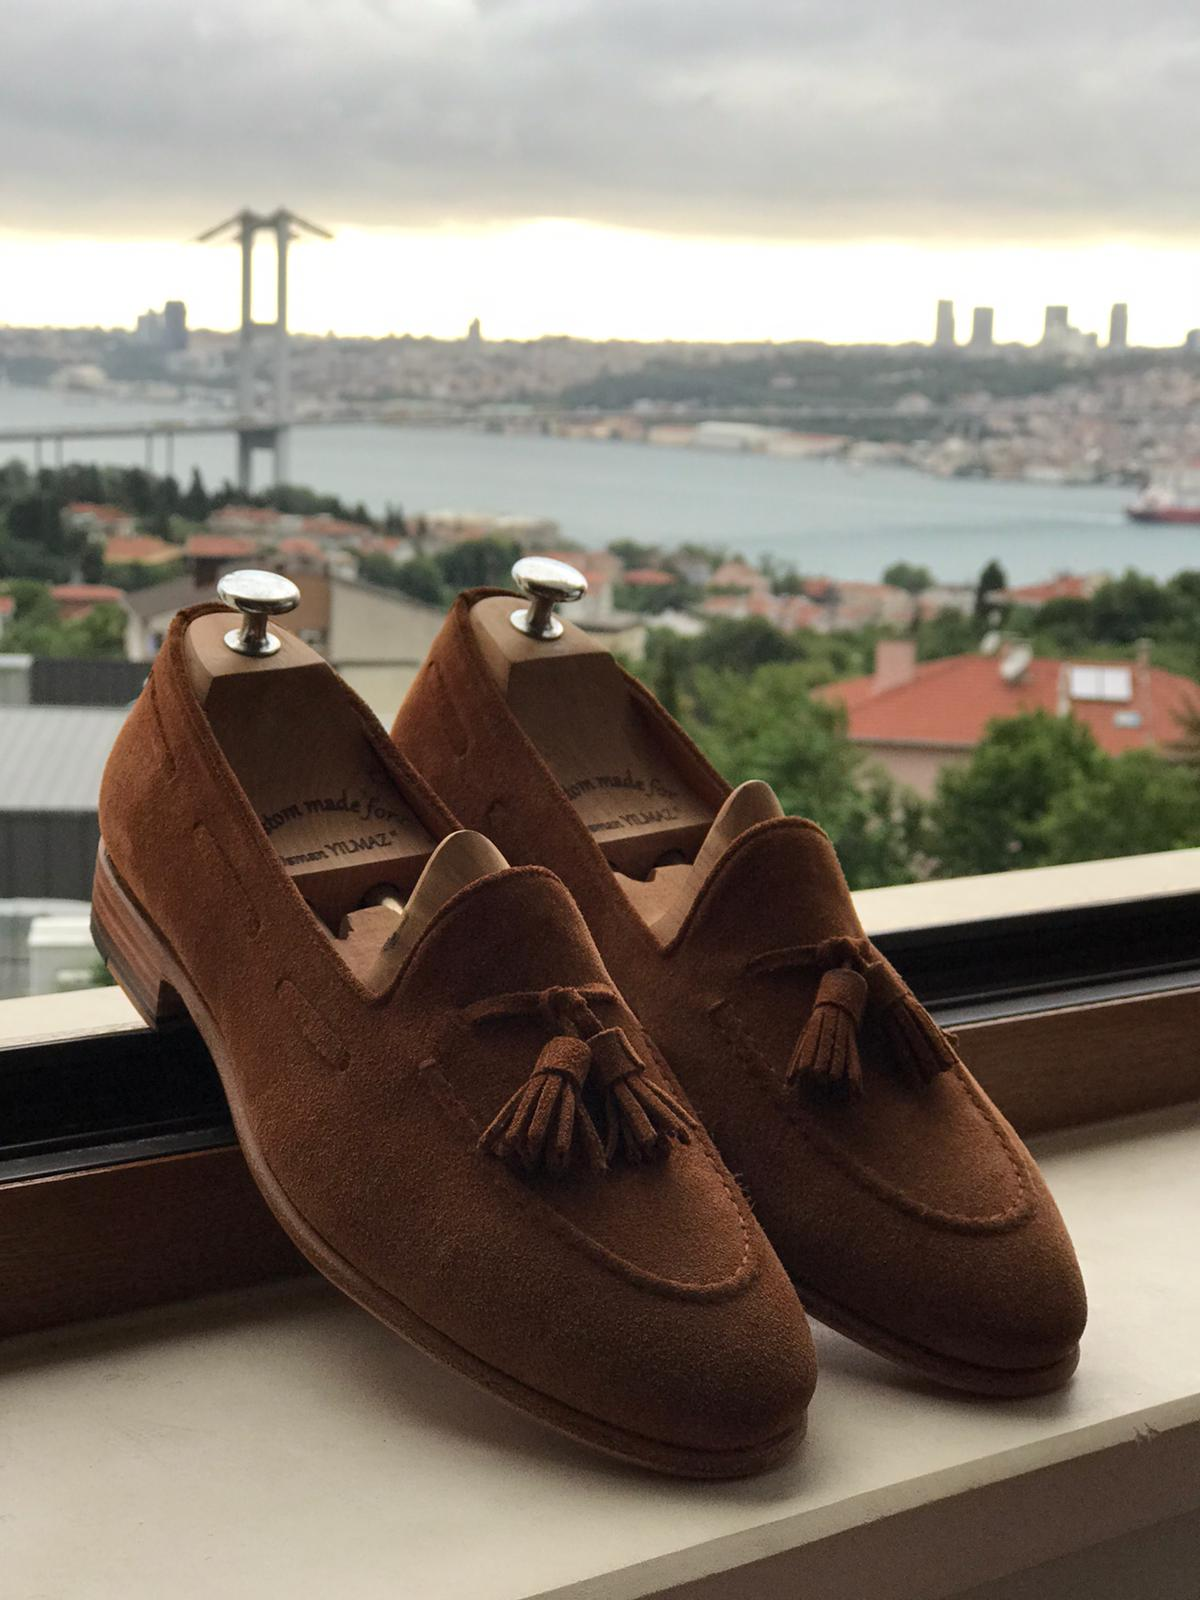 Suede For Men: 5 Ways To Look Amazing by GentWith Blog